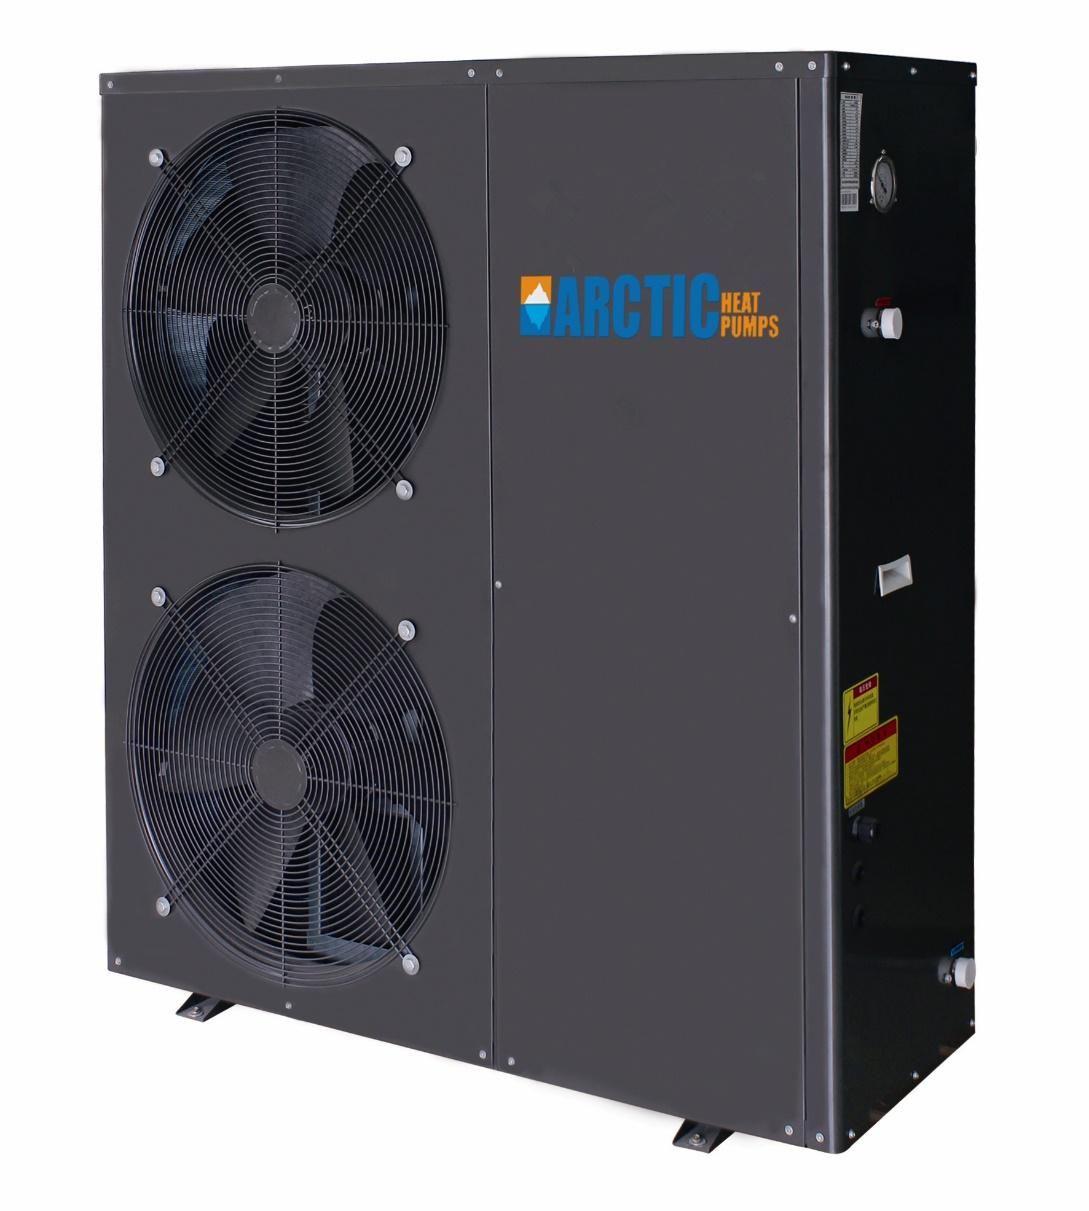 Arctic Hydronic Air To Water Heat Pump 48 000 Btu With